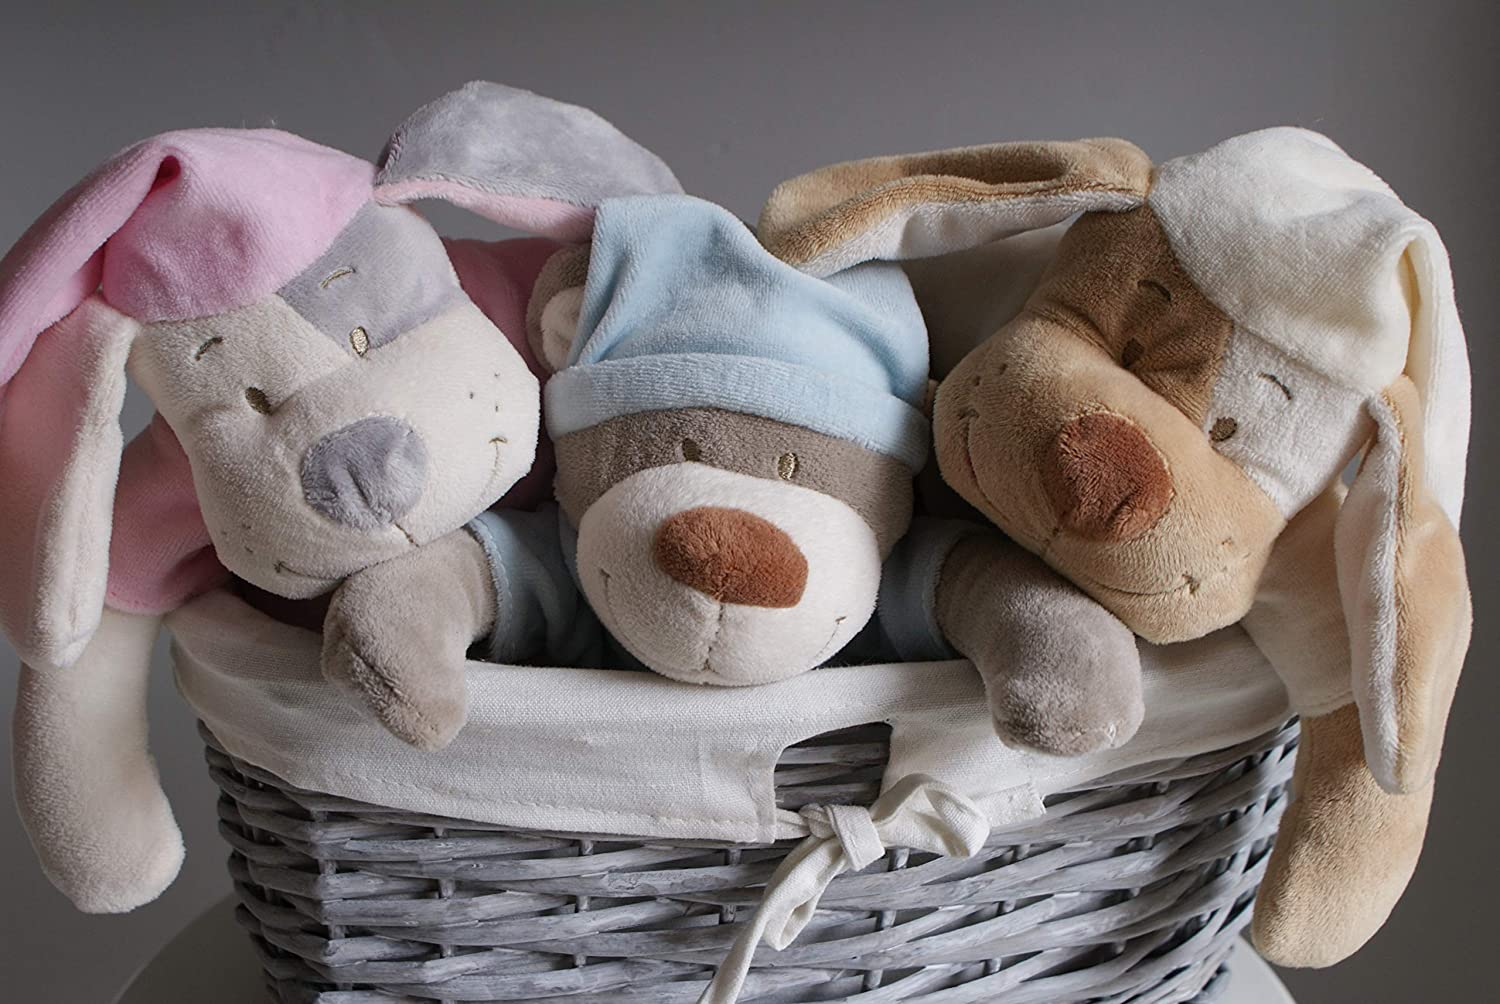 Automatic Turn On Puts The Baby to Sleep at Night Teddy Bear Doodoo Calms The Crying Baby with Womb Sounds